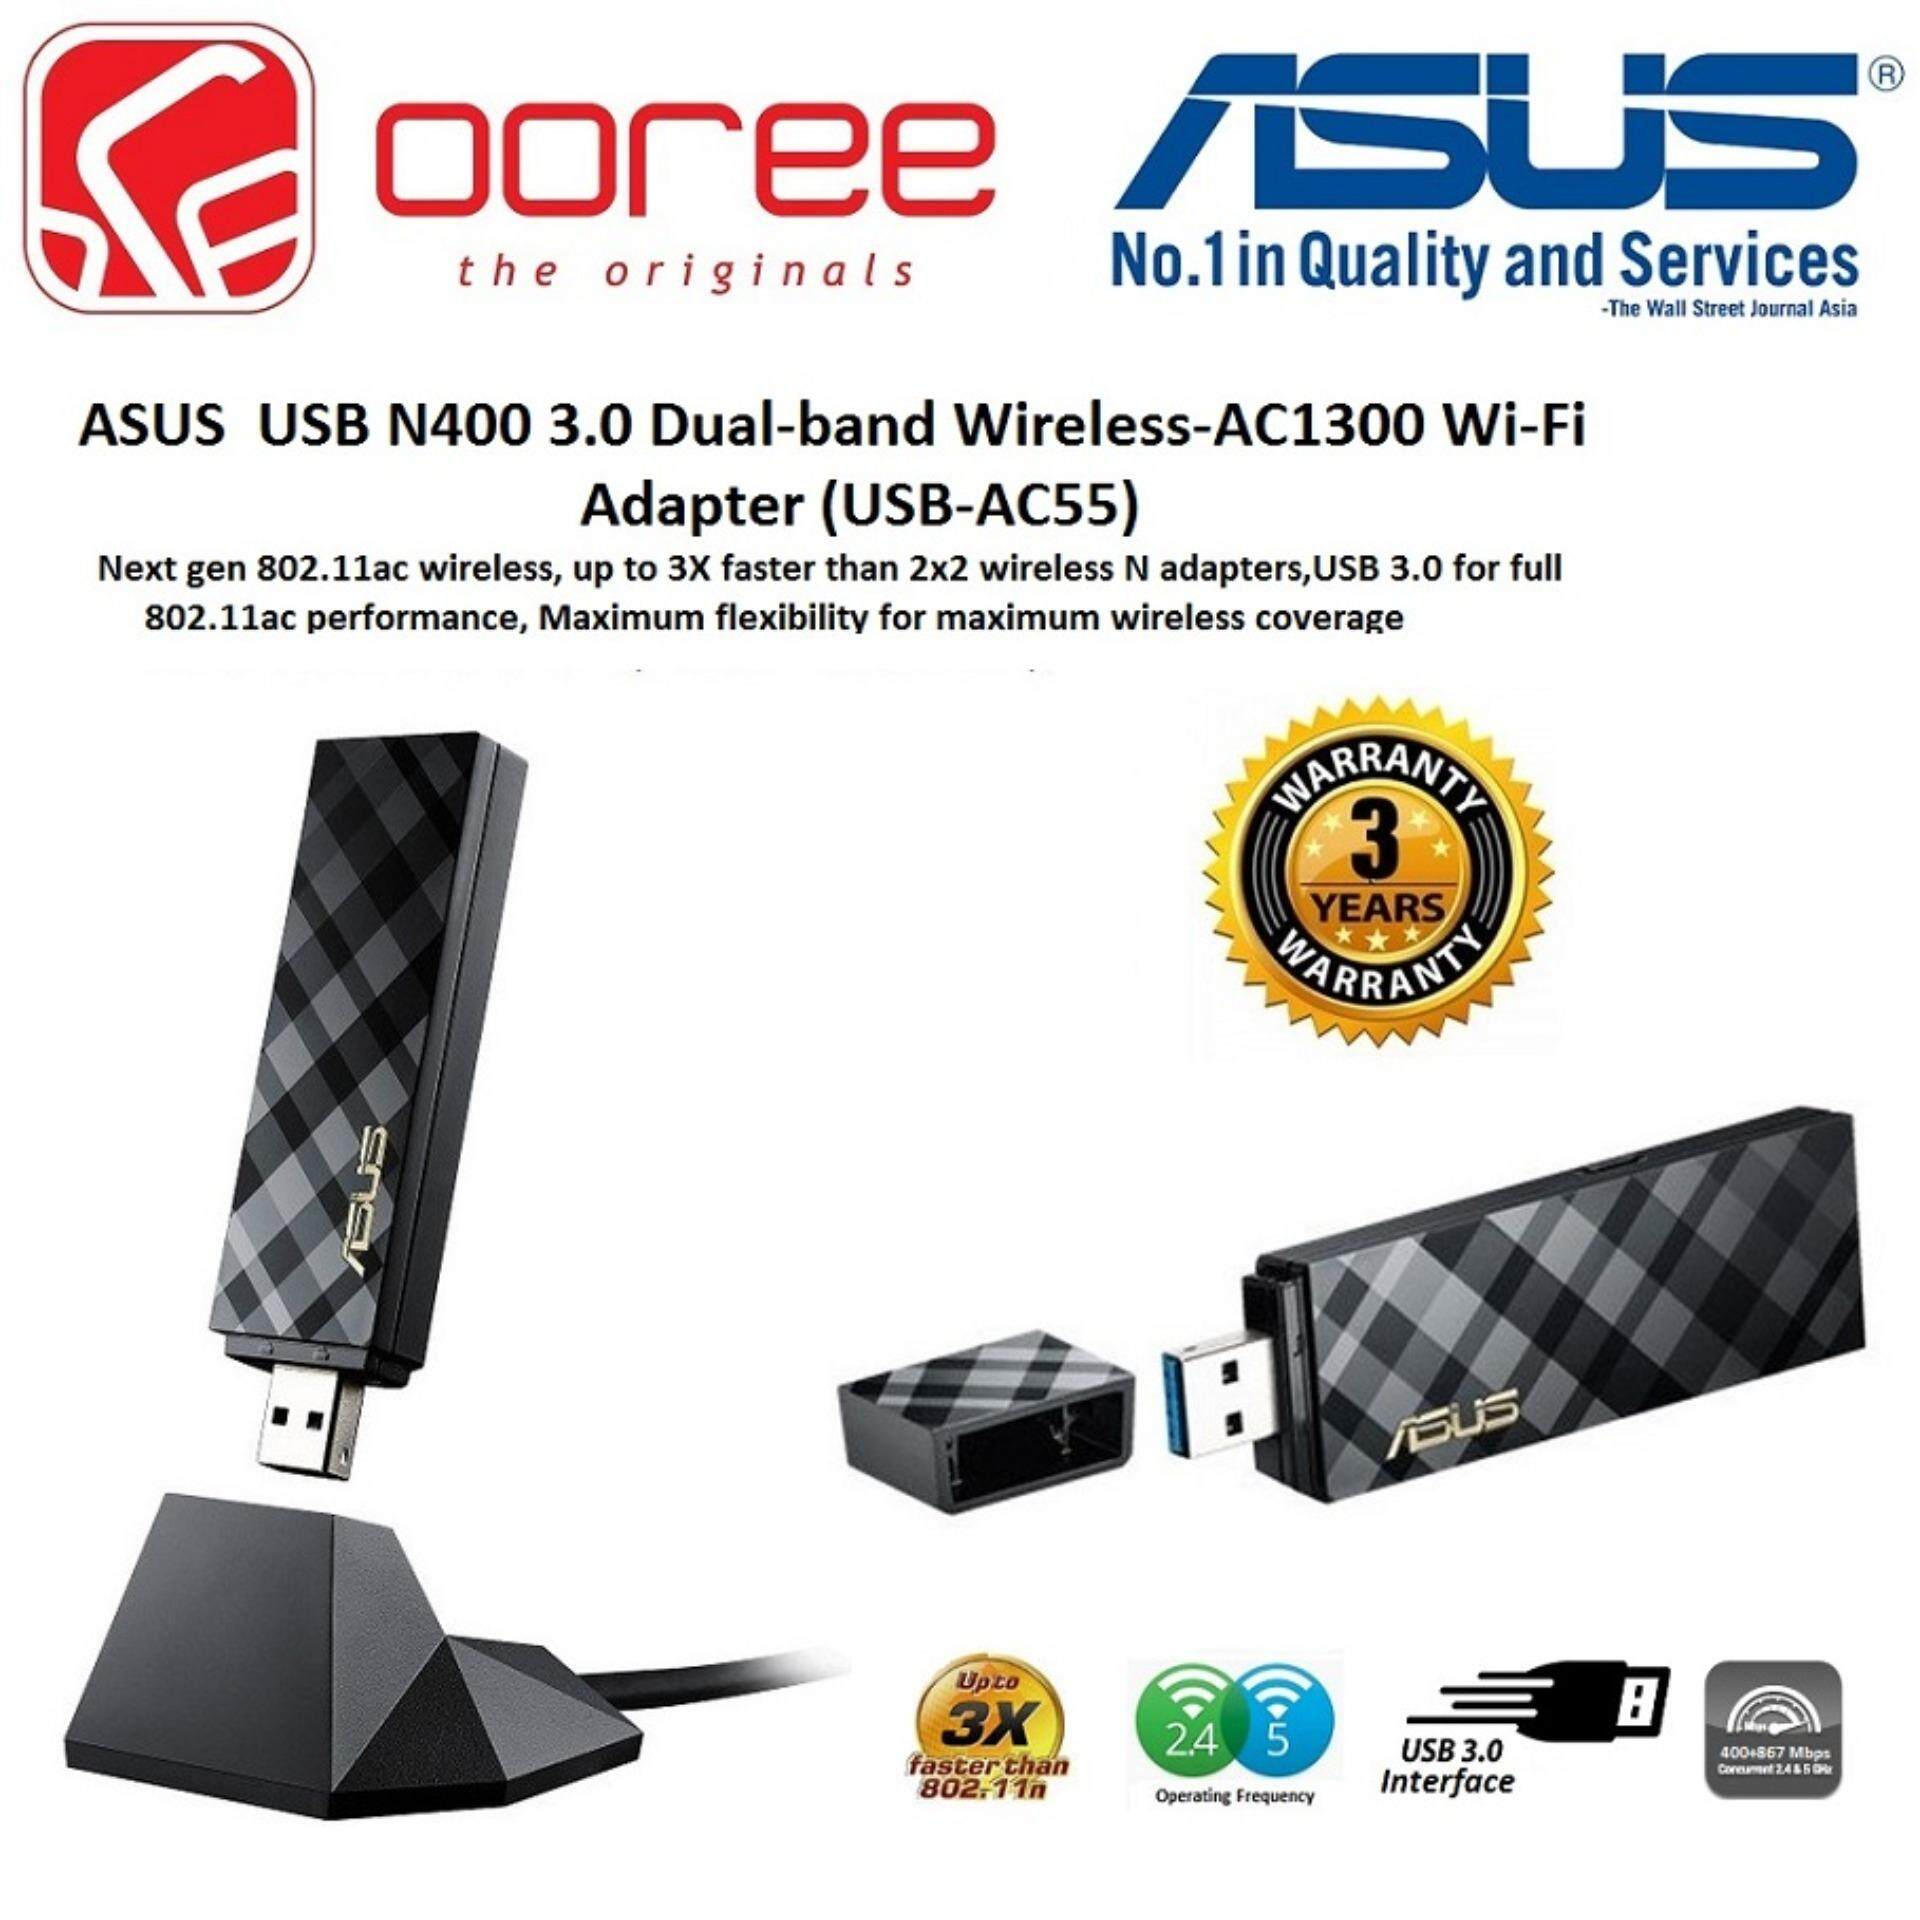 Features Asus Usb Ac53 Nano Ac1200 Dual Band Wi Fi Adapter Rt Ac55uhp High Power Router Wireless Ac 1200 Mbps Genuine Ac55 Ac1300 30